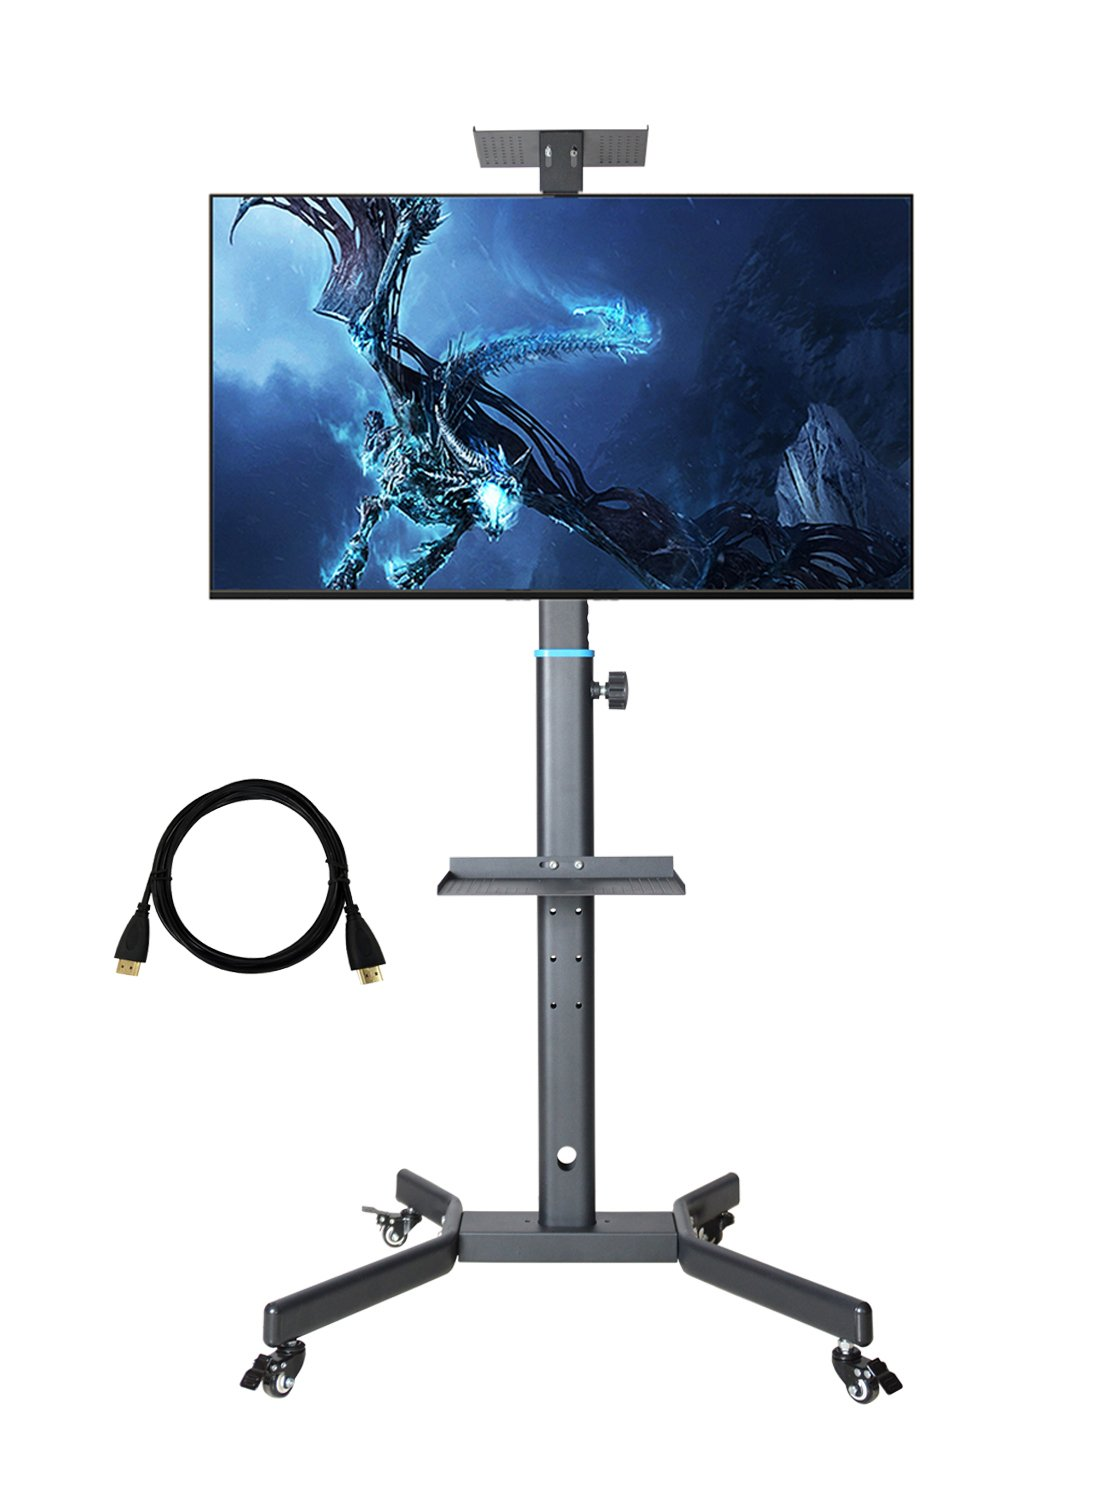 Fits 32 to 55 CNYF PTS008 Mobile TV Cart for LCD LED Plasma Flat Screen Panel Trolley Floor Stand with Locking Wheels